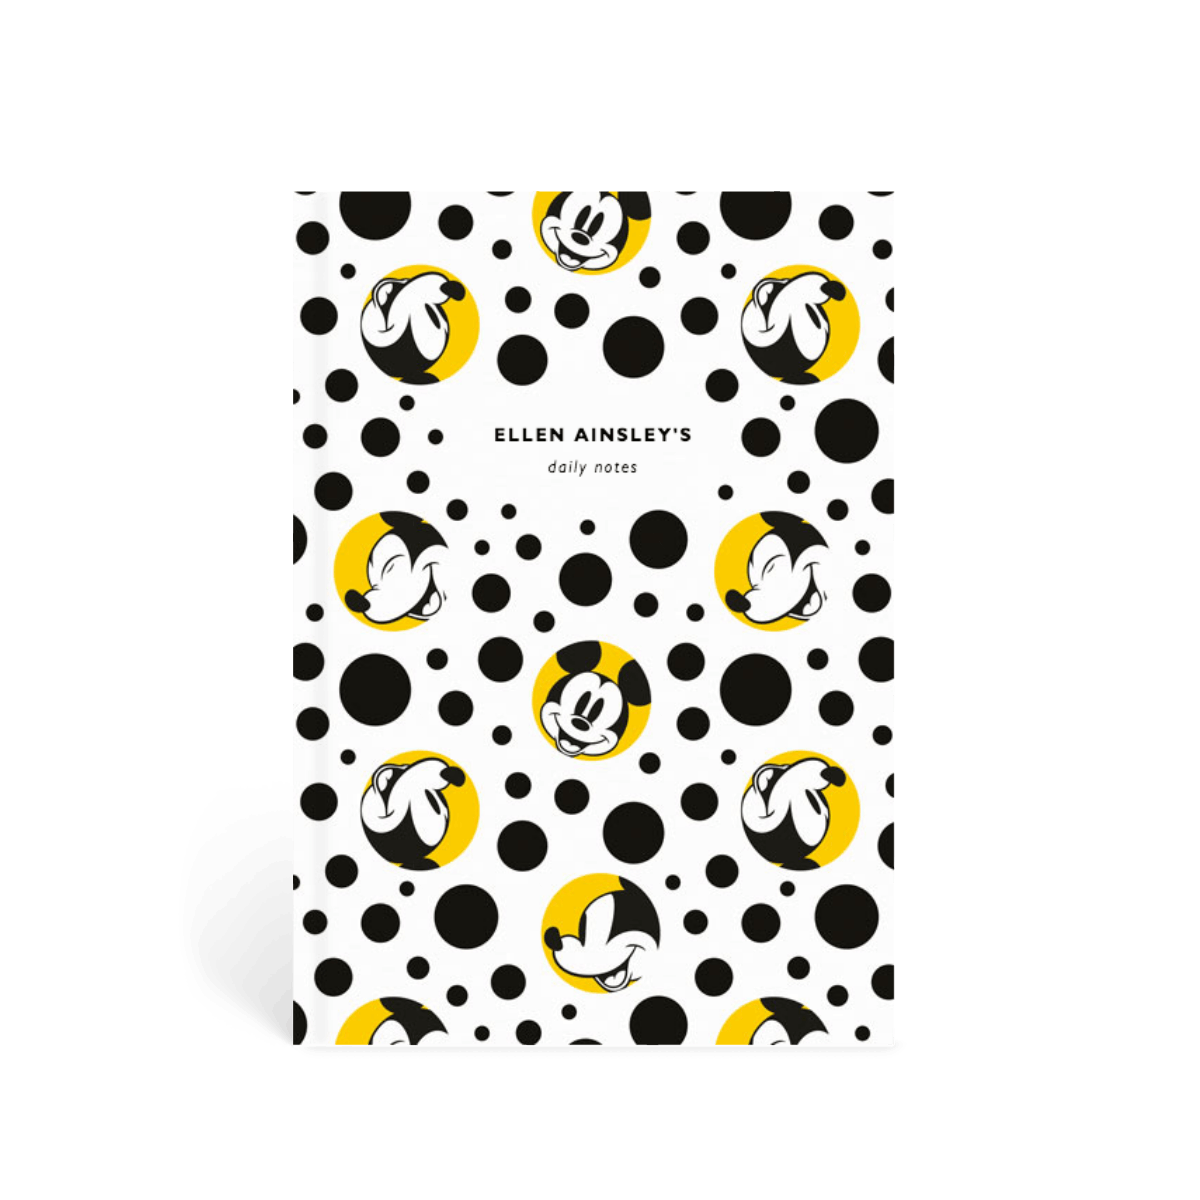 Https%3a%2f%2fwww.papier.com%2fproduct image%2f47580%2f25%2fmickey mouse 11677 front 1539008975.png?ixlib=rb 1.1